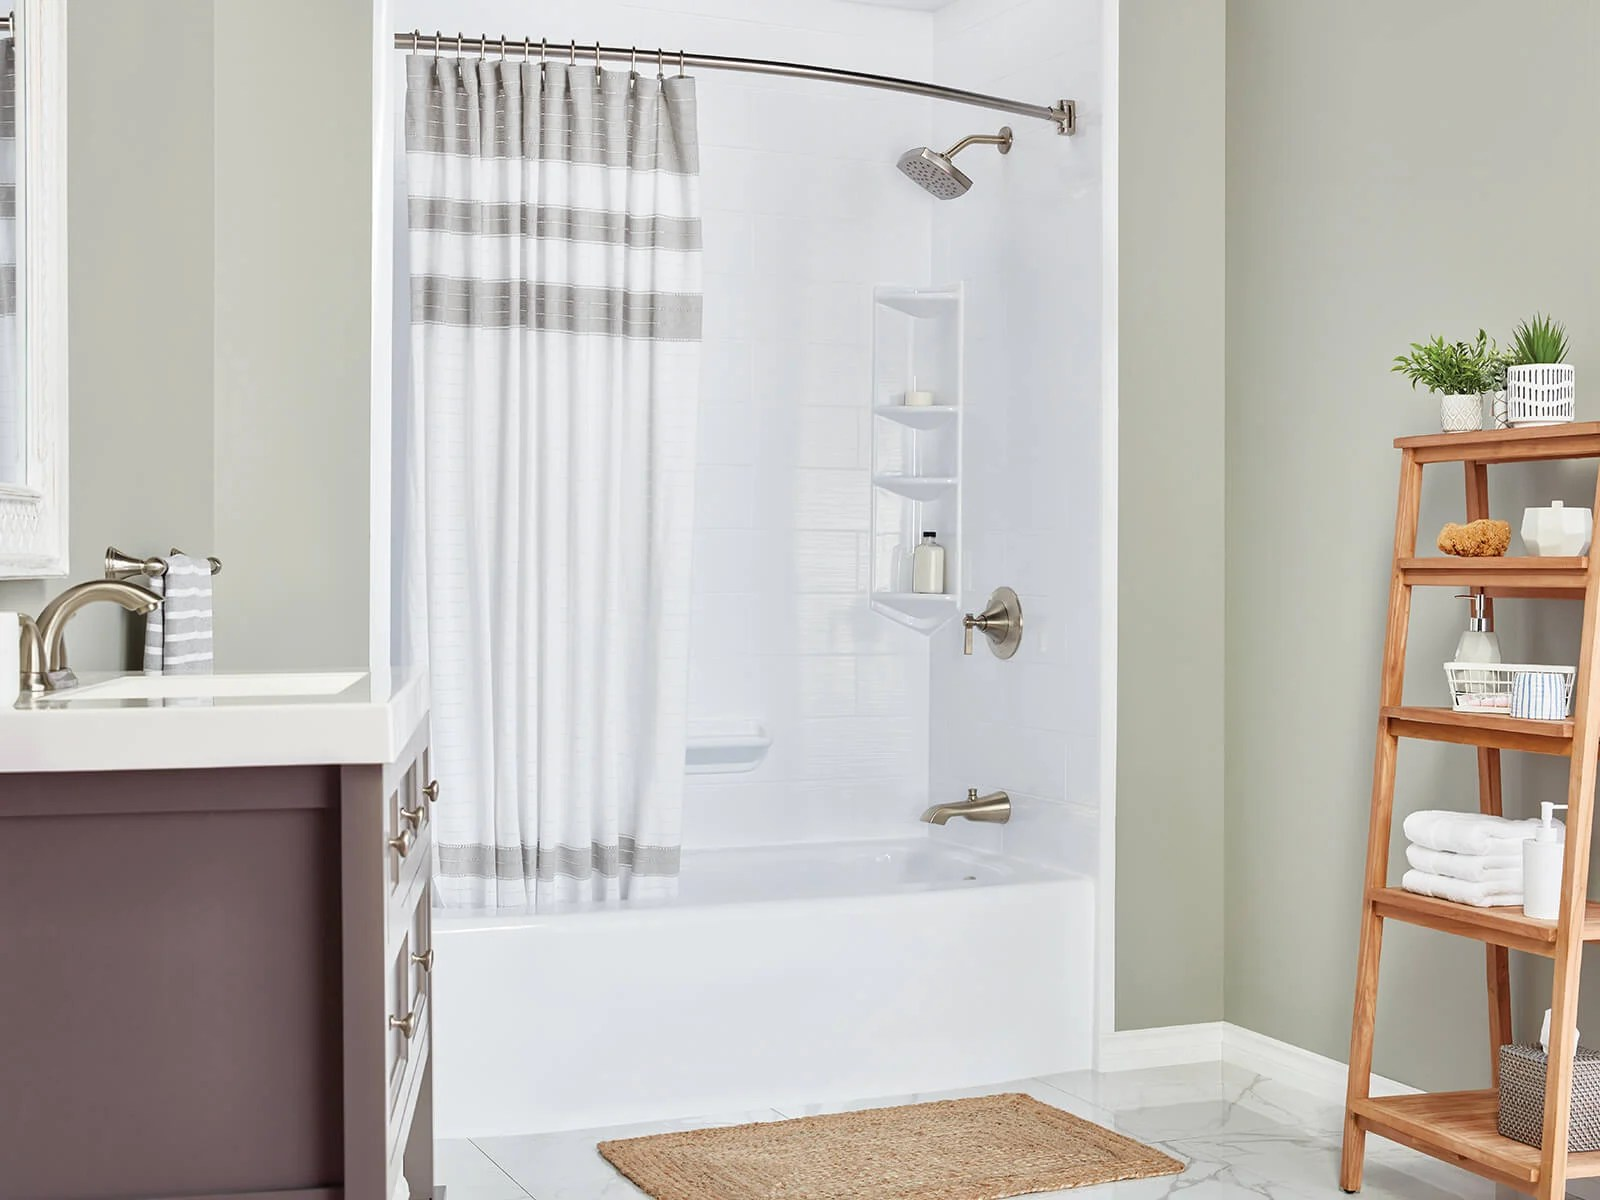 bathtub replacement and remodel bath